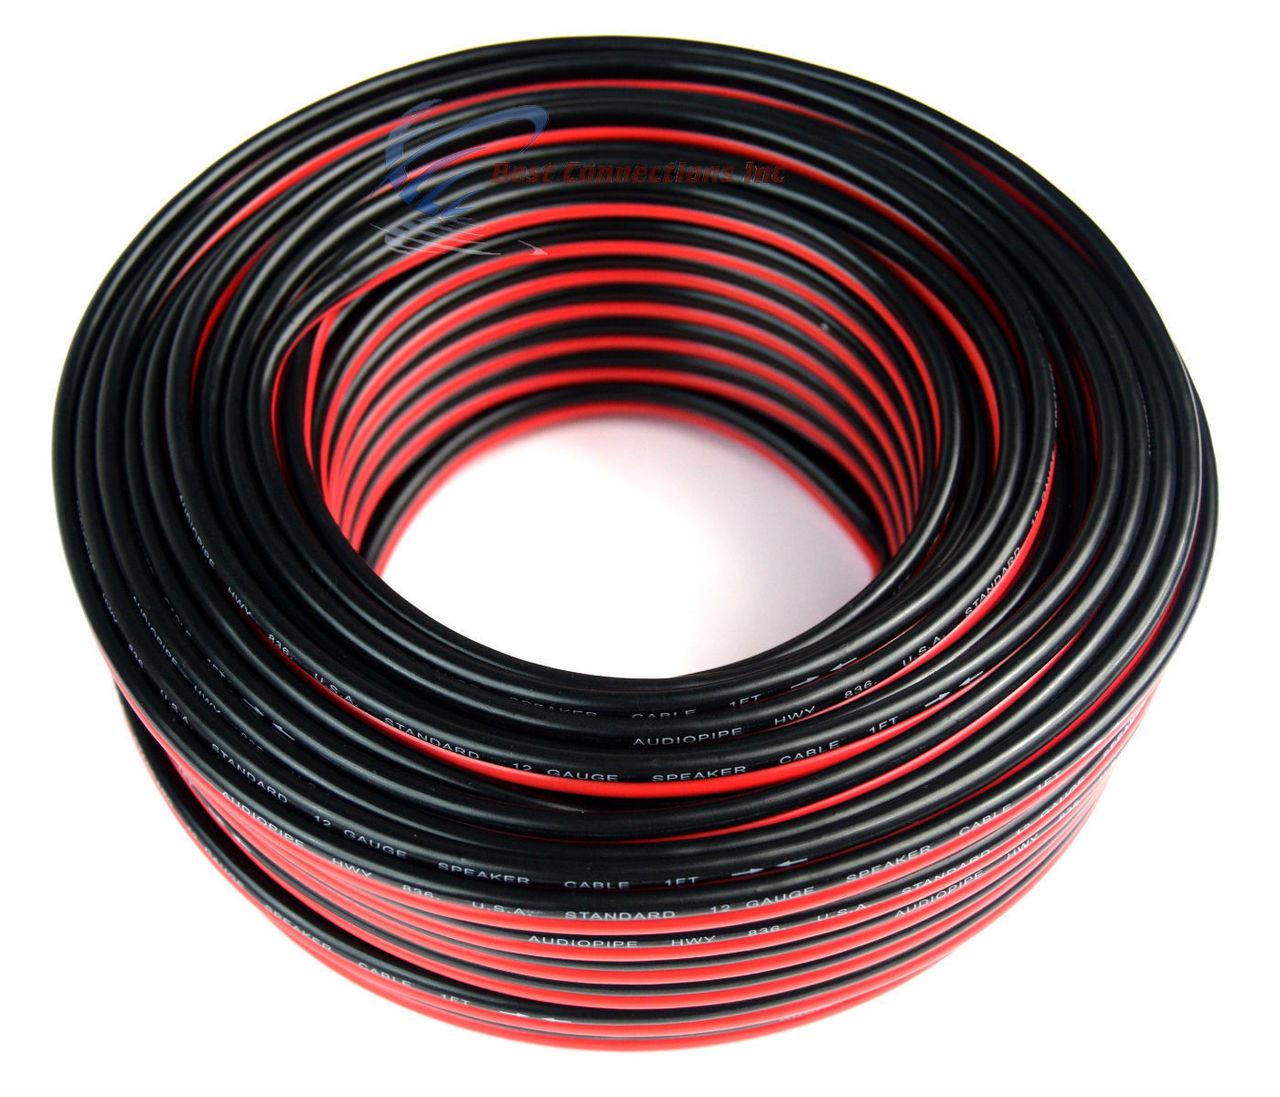 12 Gauge 100 Feet Red Black Stranded 2 Conductor Speaker Wire Cable Copper Mix 784644618950